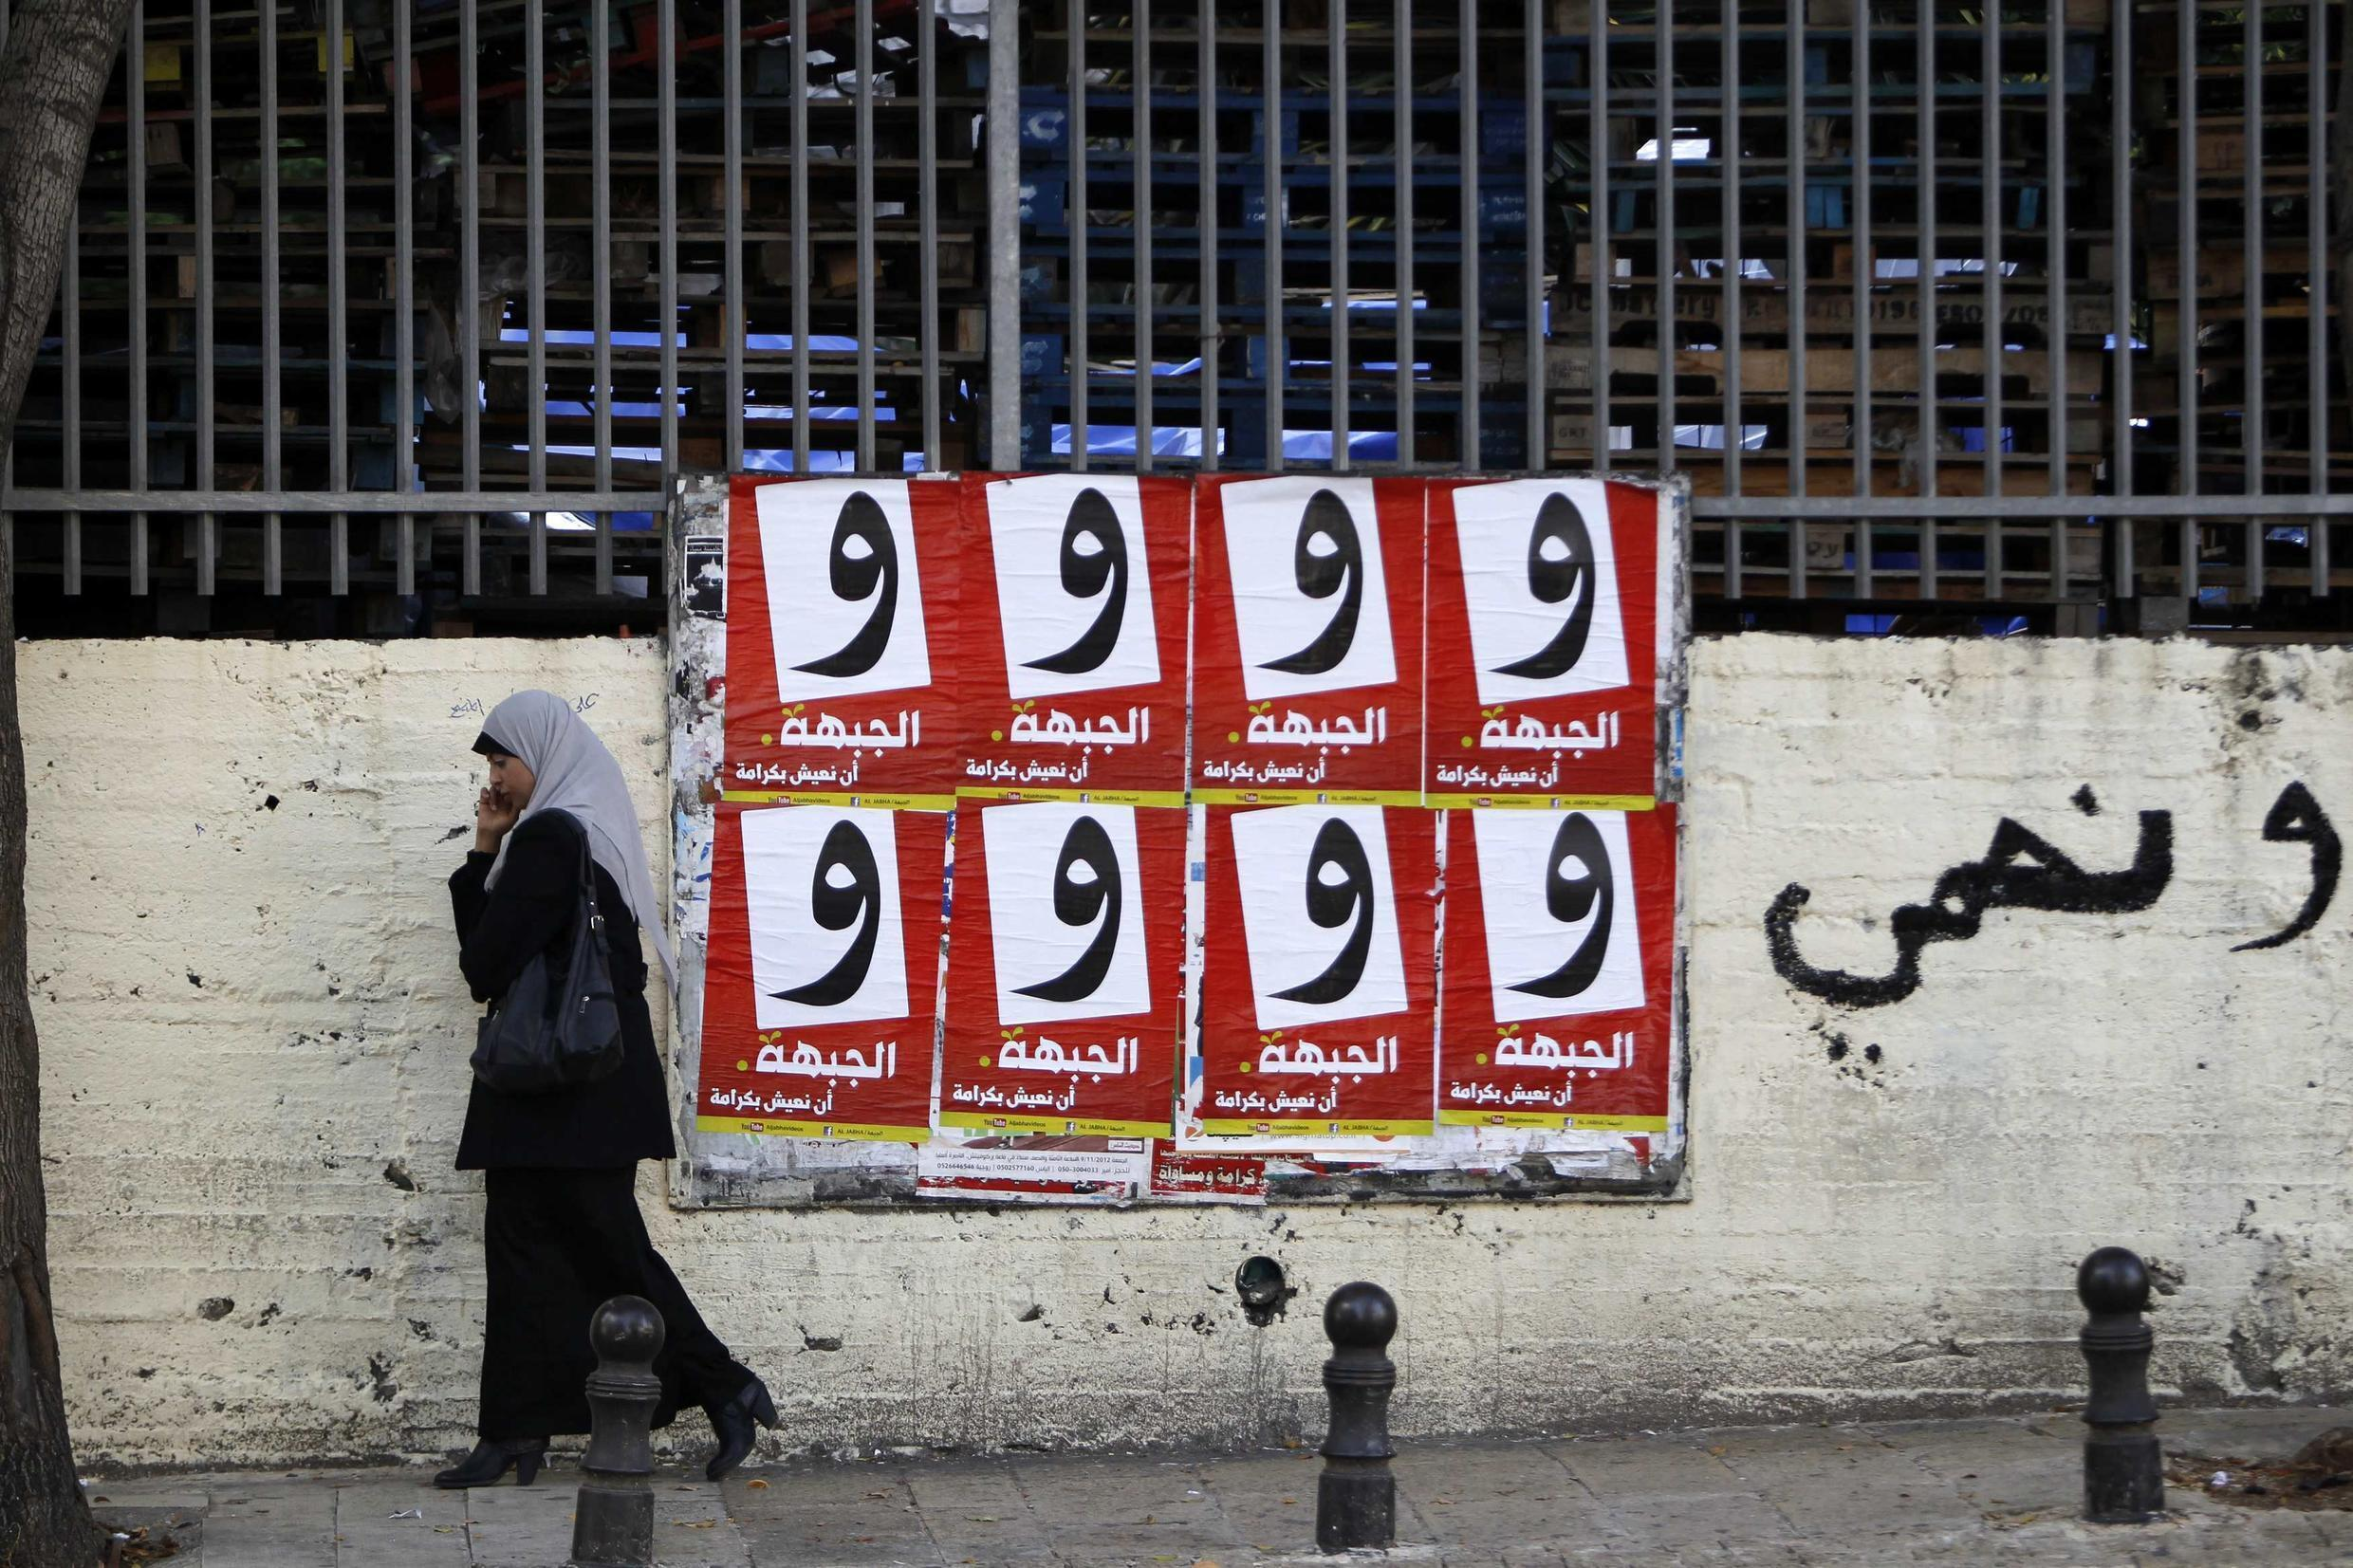 A woman walks past campaign posters for the Arab-led Hadash party